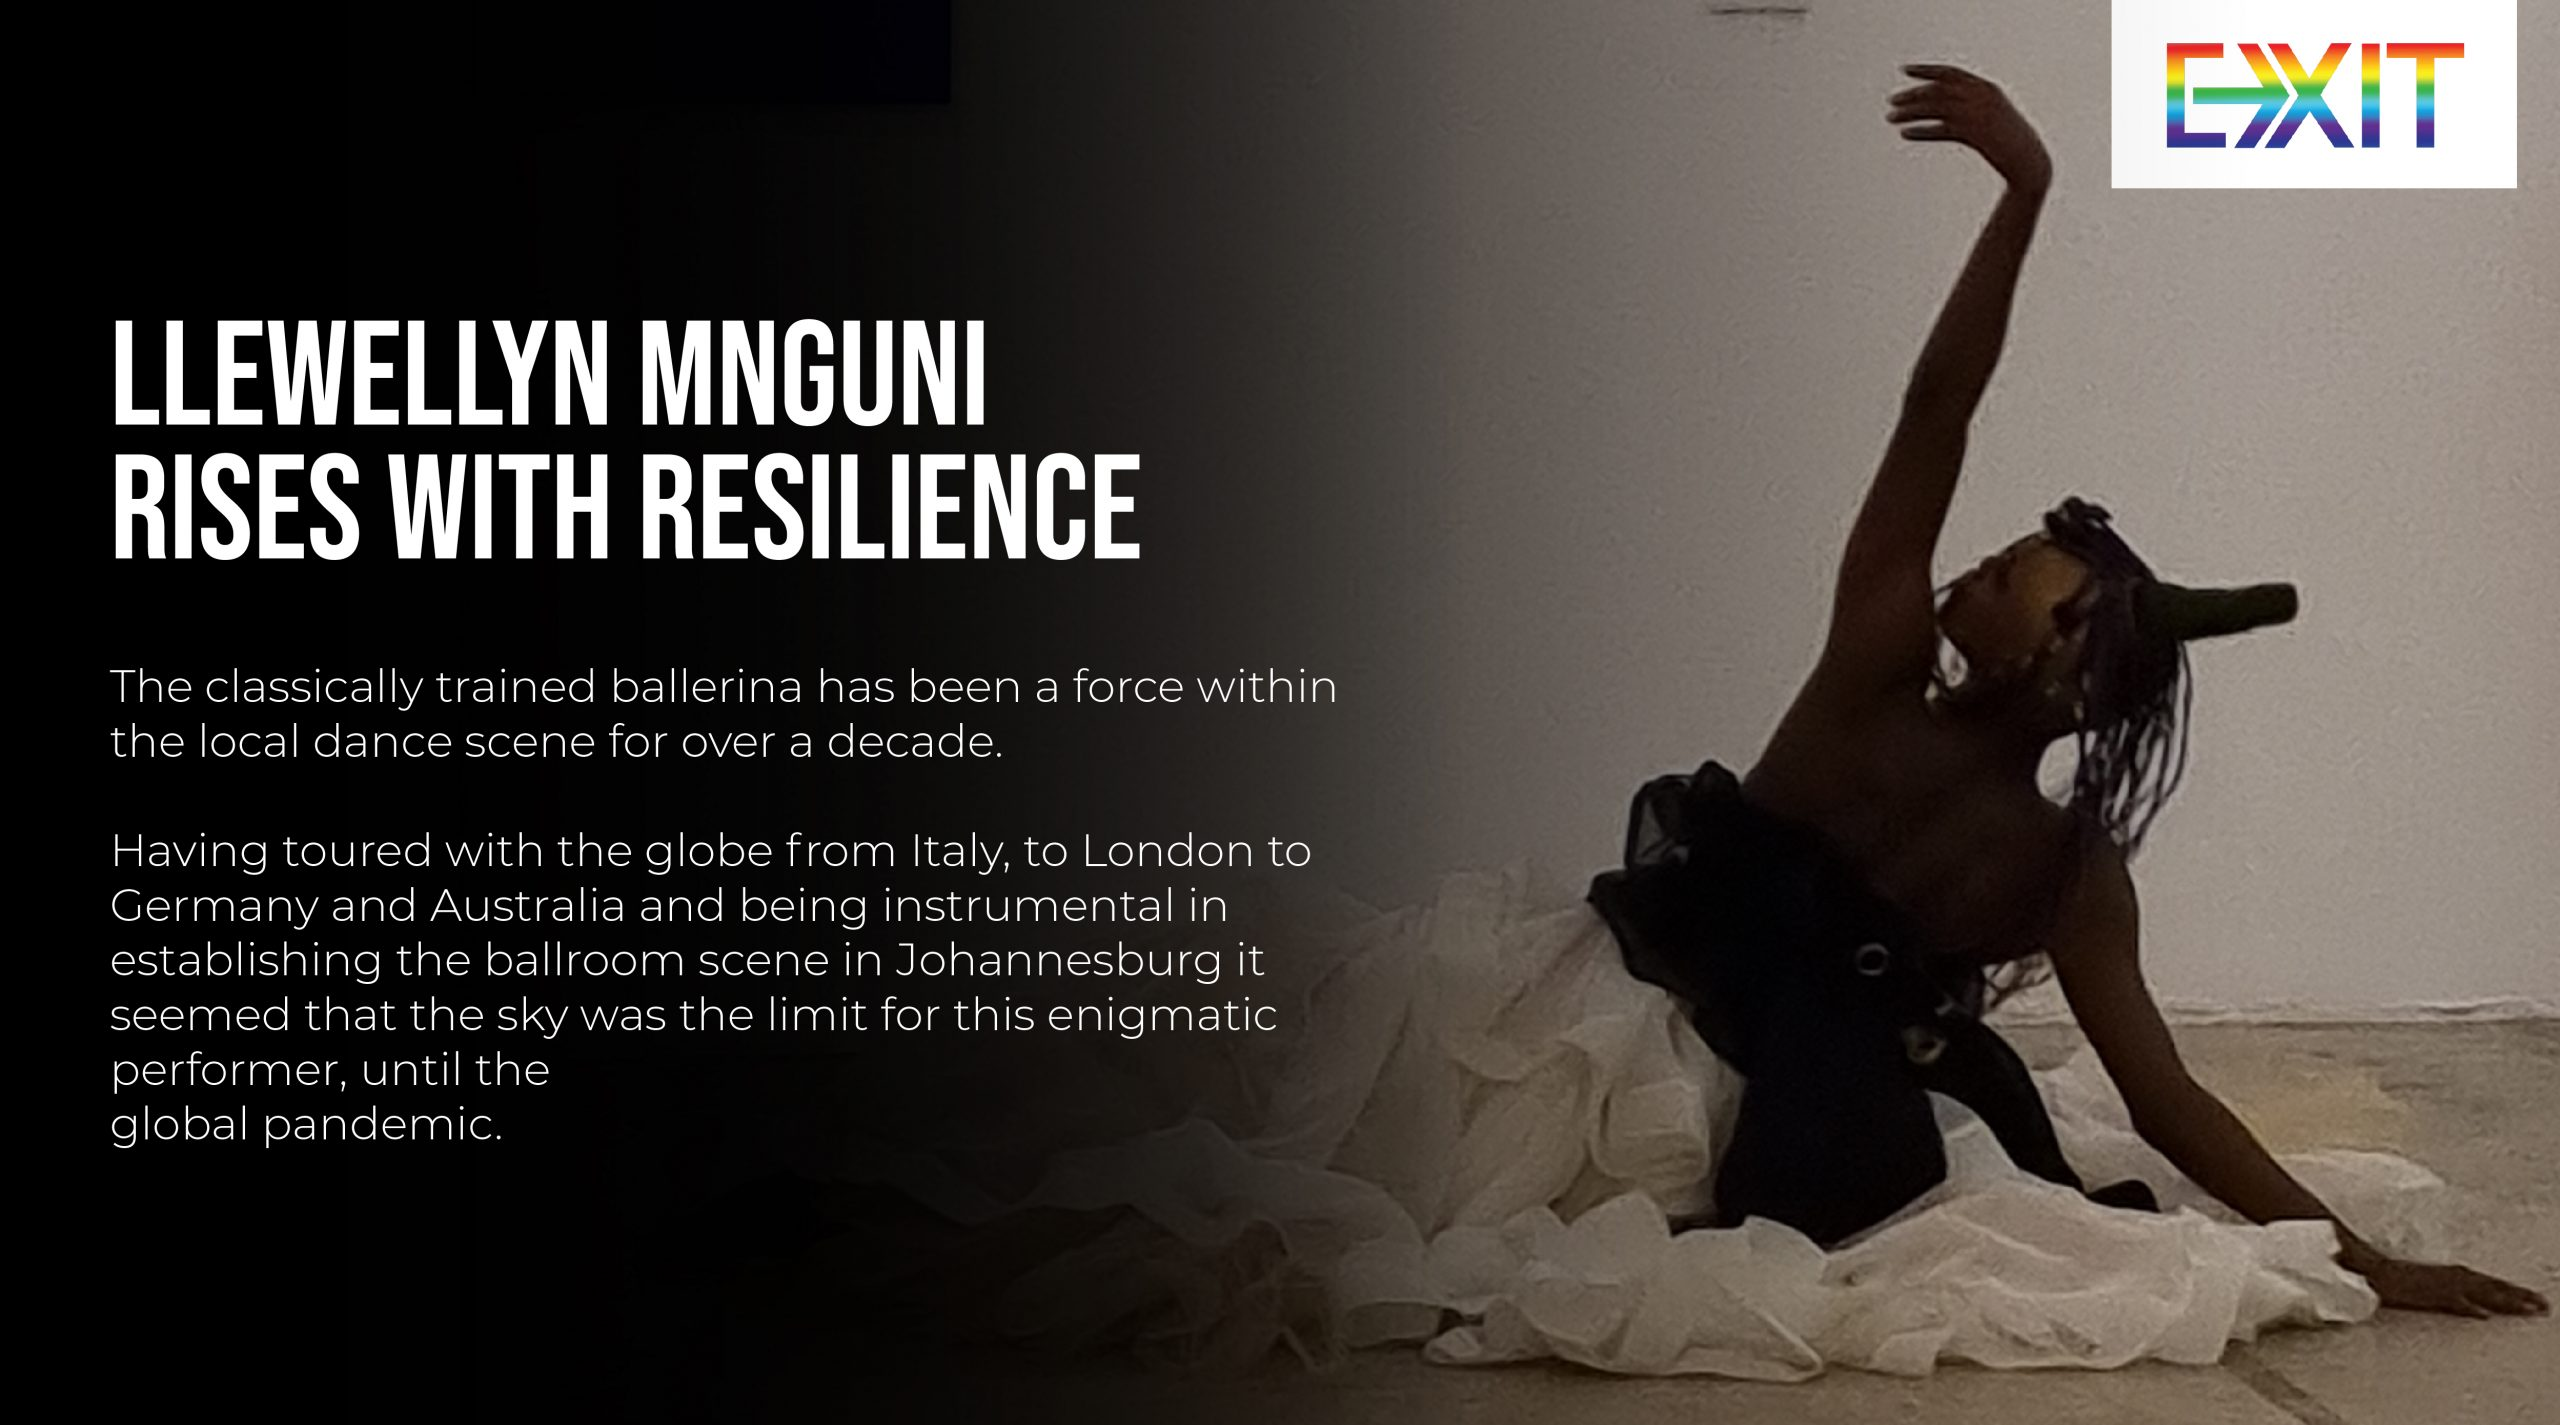 LLEWELLYN MNGUNI RISES WITH RESILIENCE